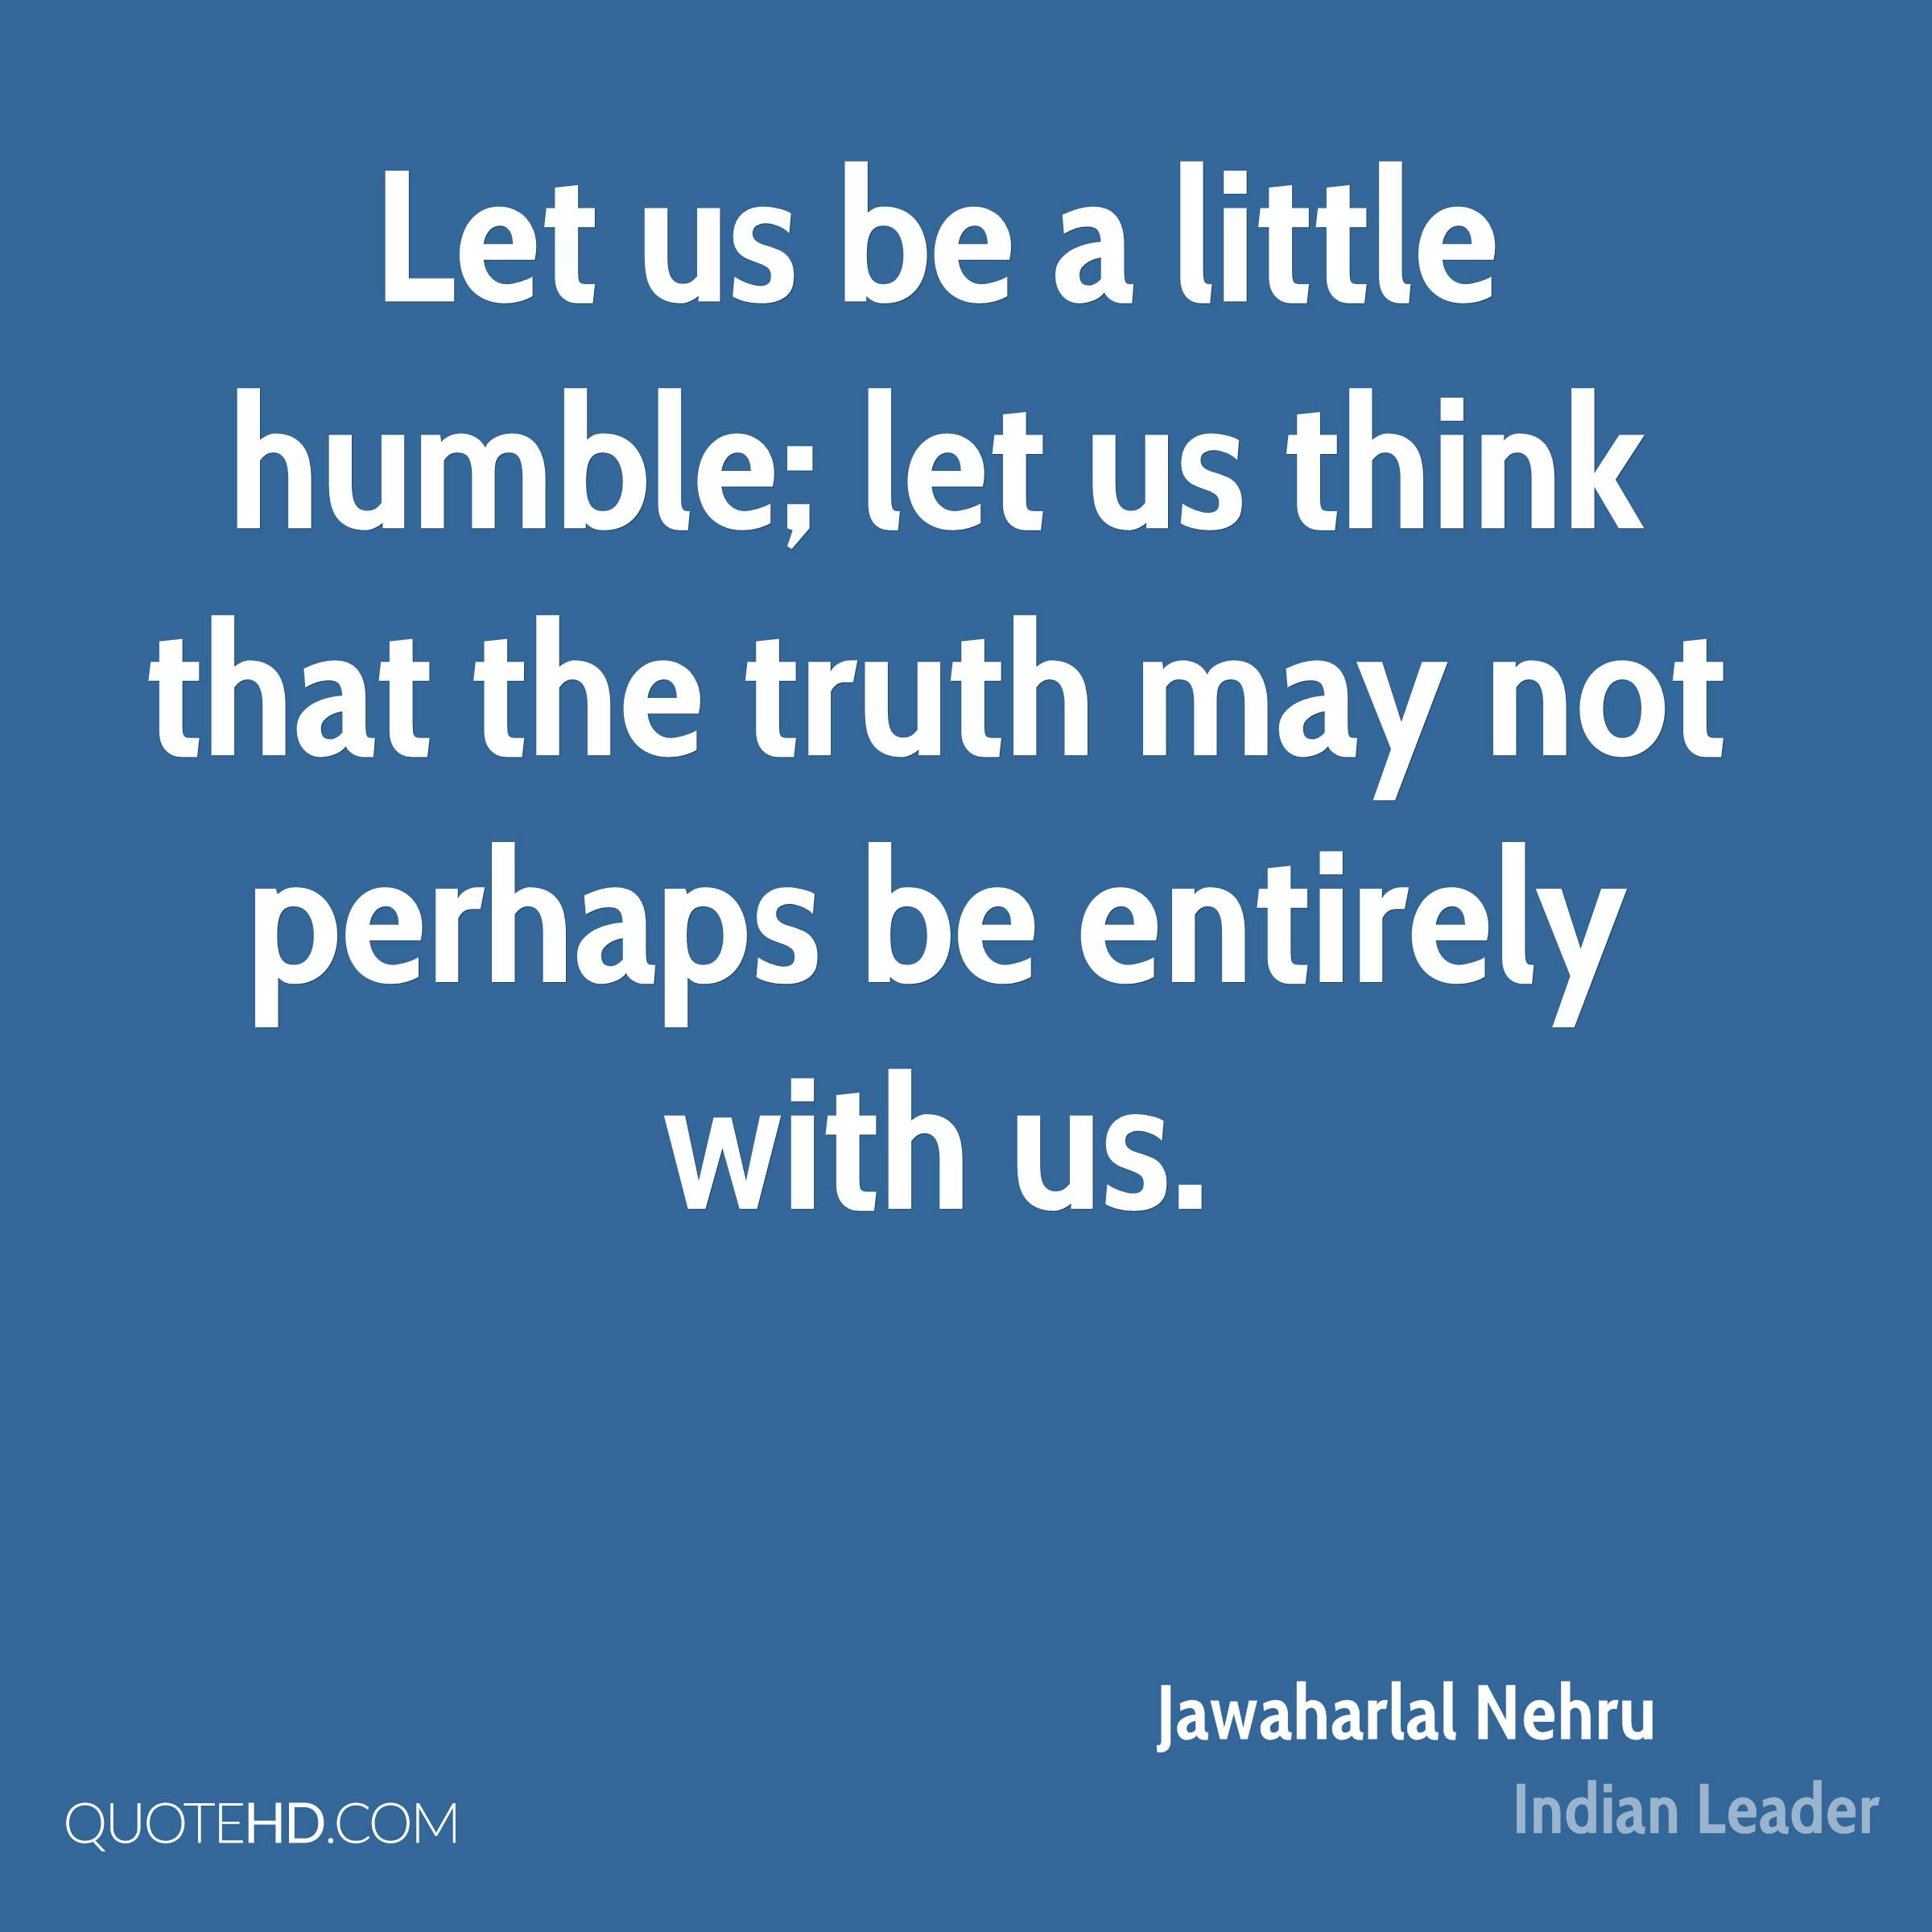 Let us be a little humble; let us think that the truth may not perhaps be entirely with us.